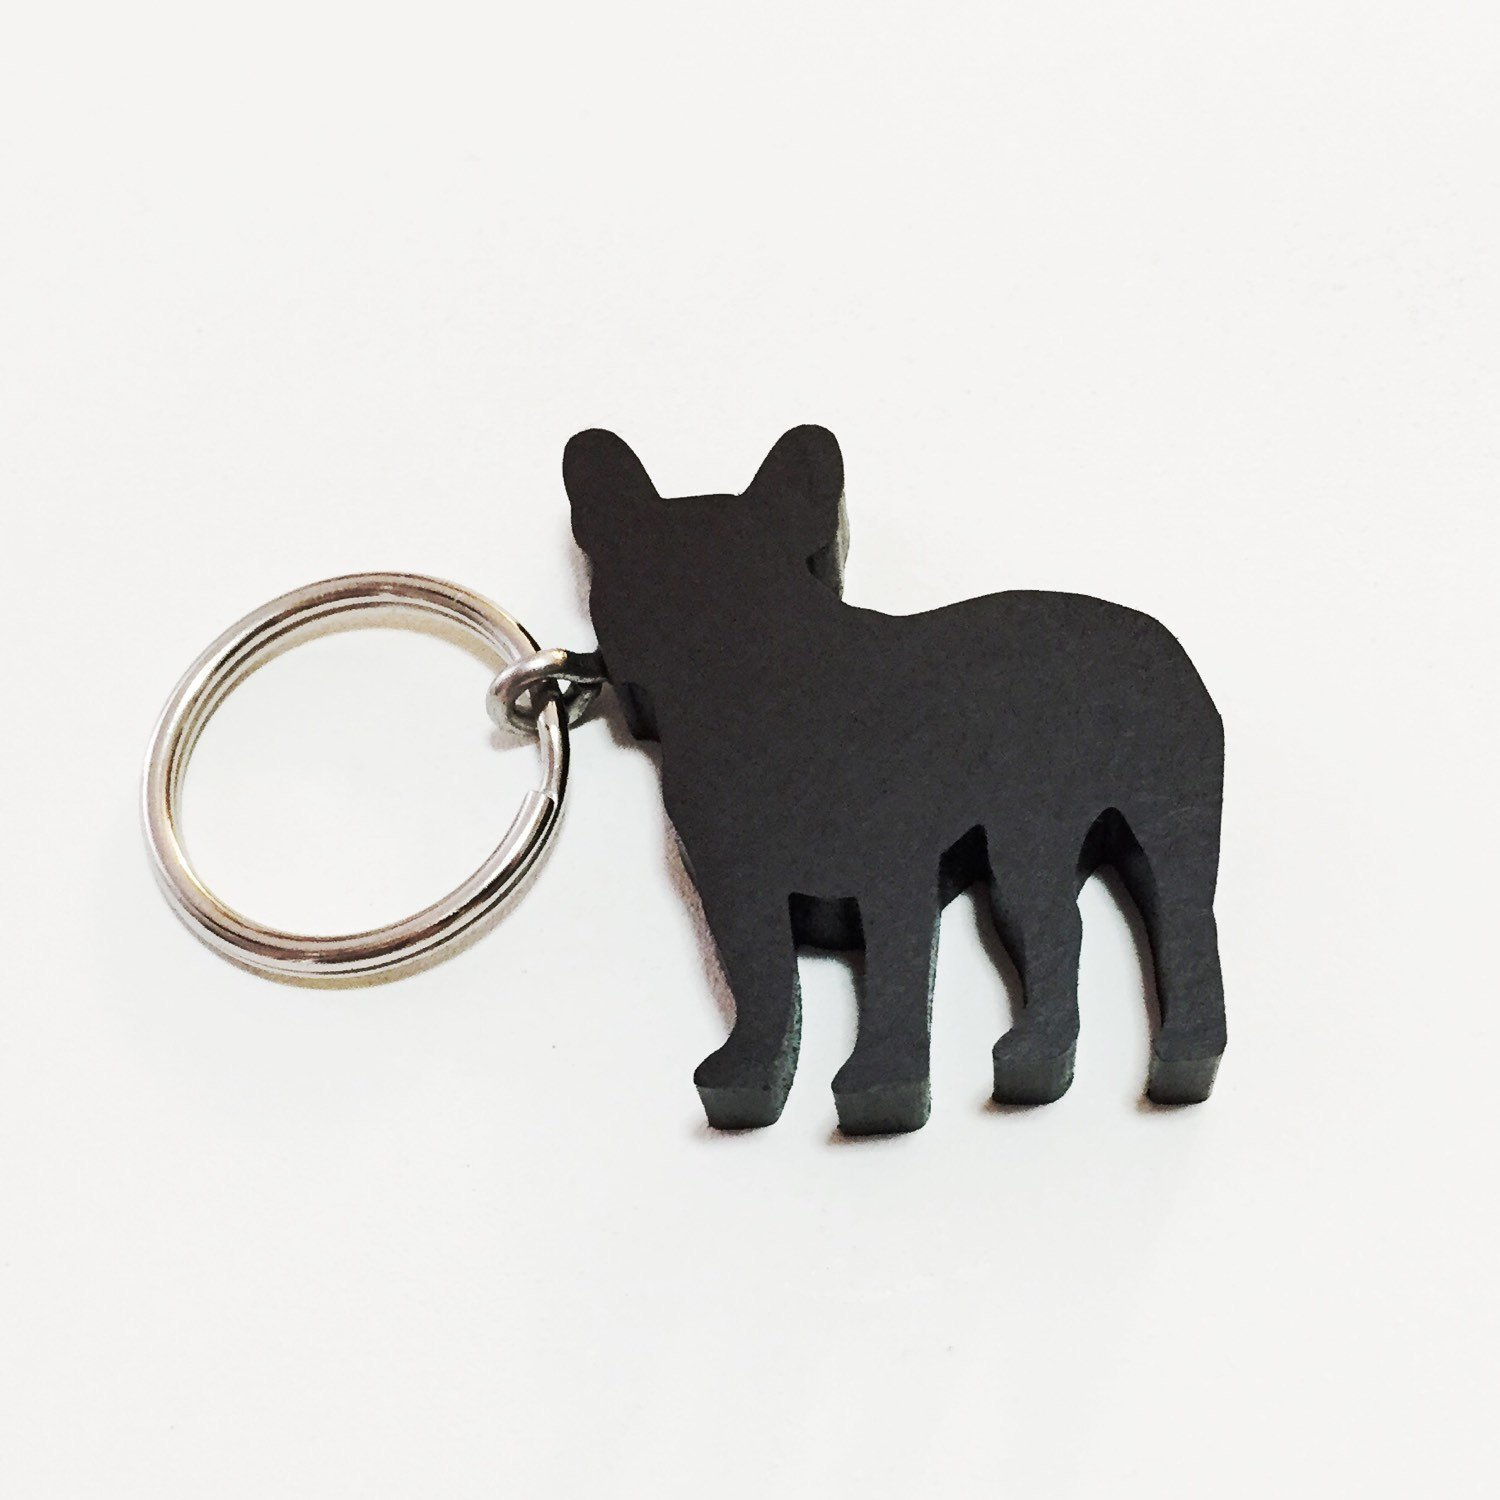 Amazon.com: French Bulldog Gifts French Bulldog Keychain Eco Friendly Gifts for Dog Lovers: Handmade